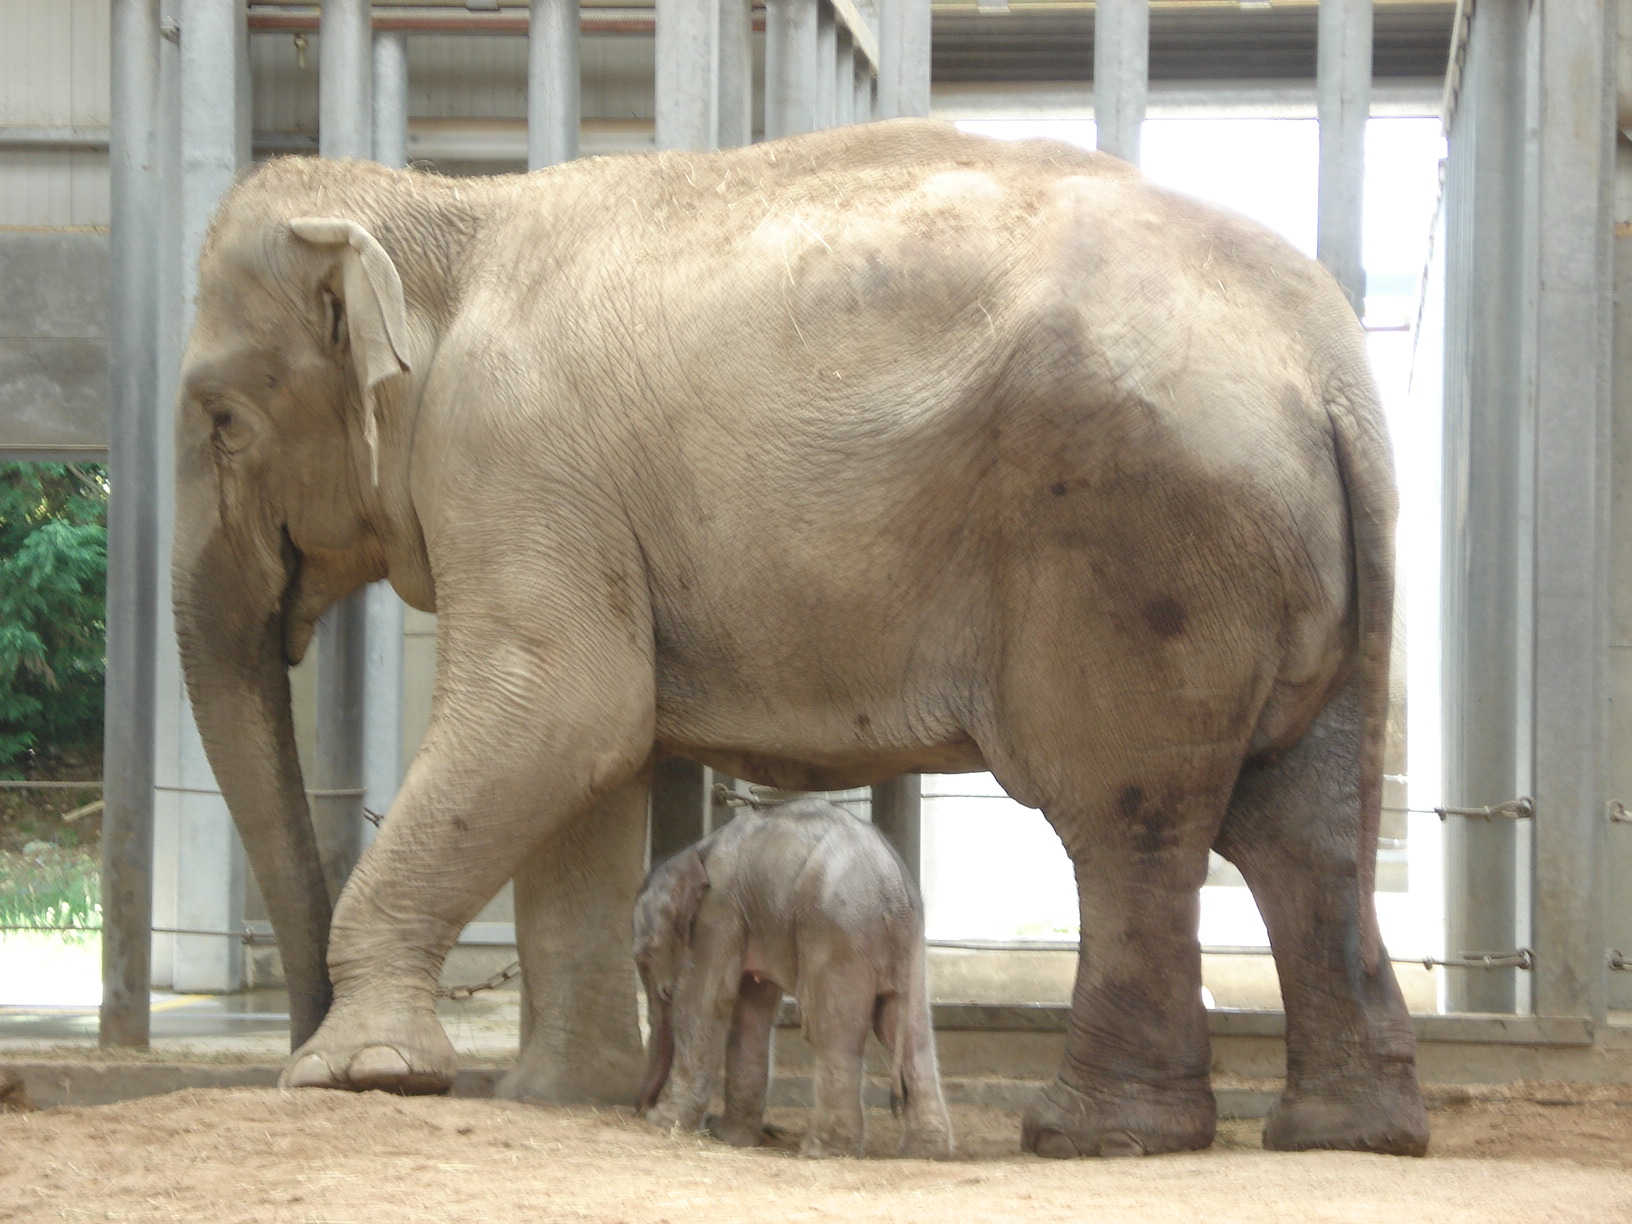 Female ♀ Asian elephant Jade at Dompierre Le Pal Zoo